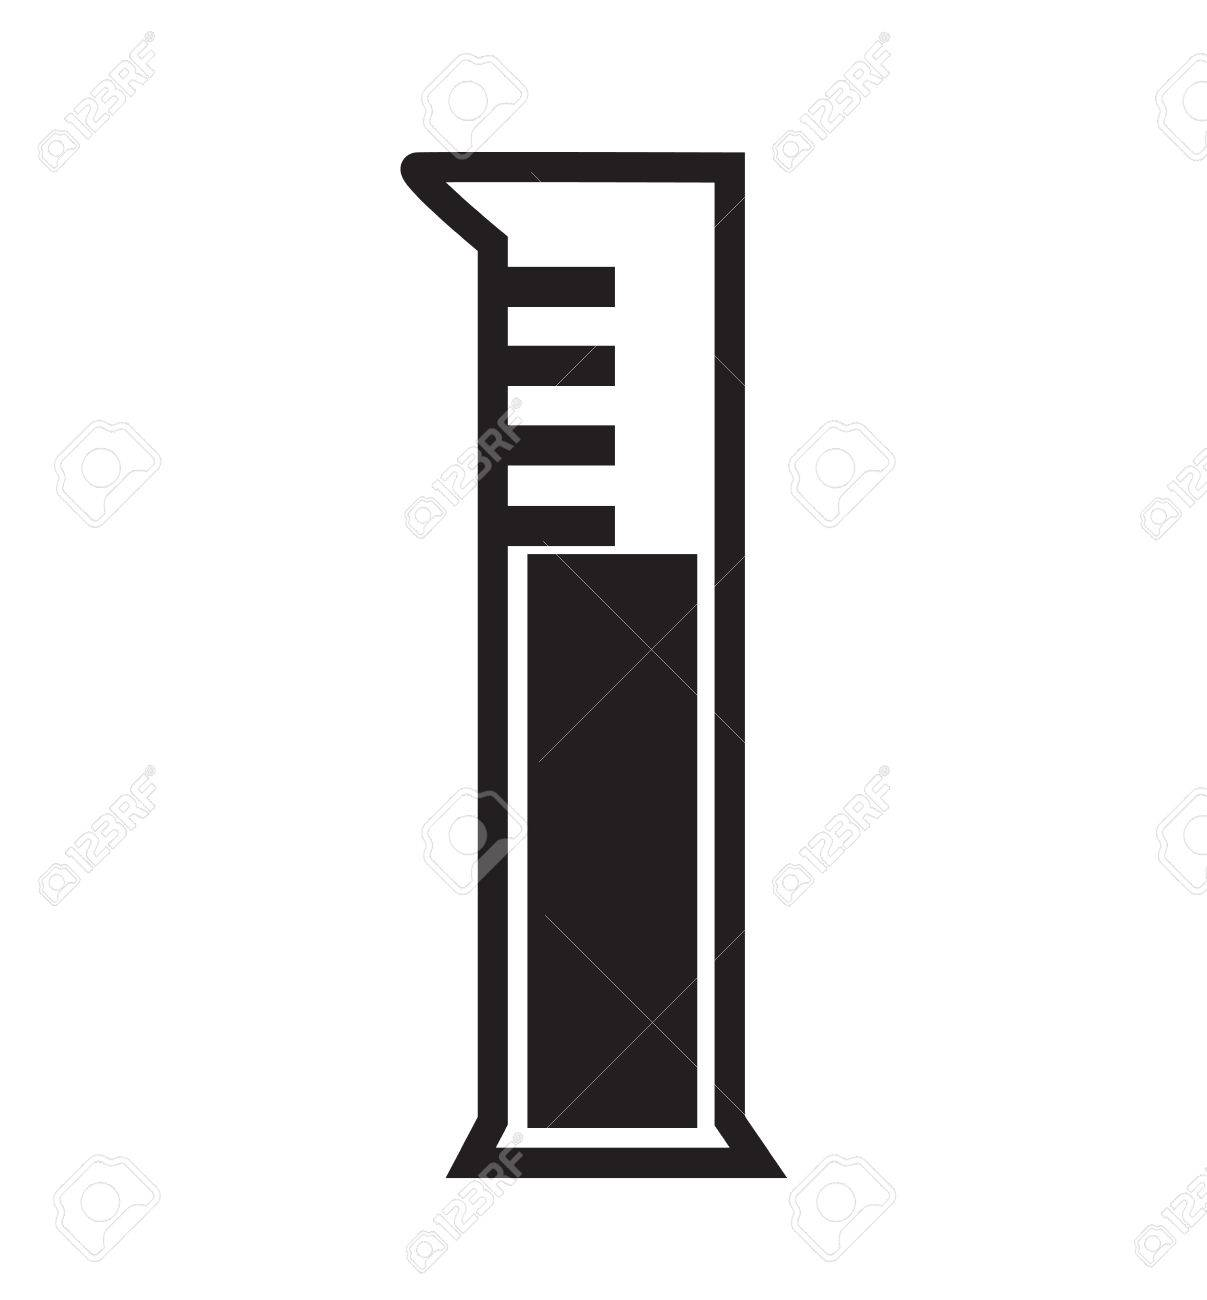 Graduated Cylinder Icon Vector Isolated In White Background Royalty